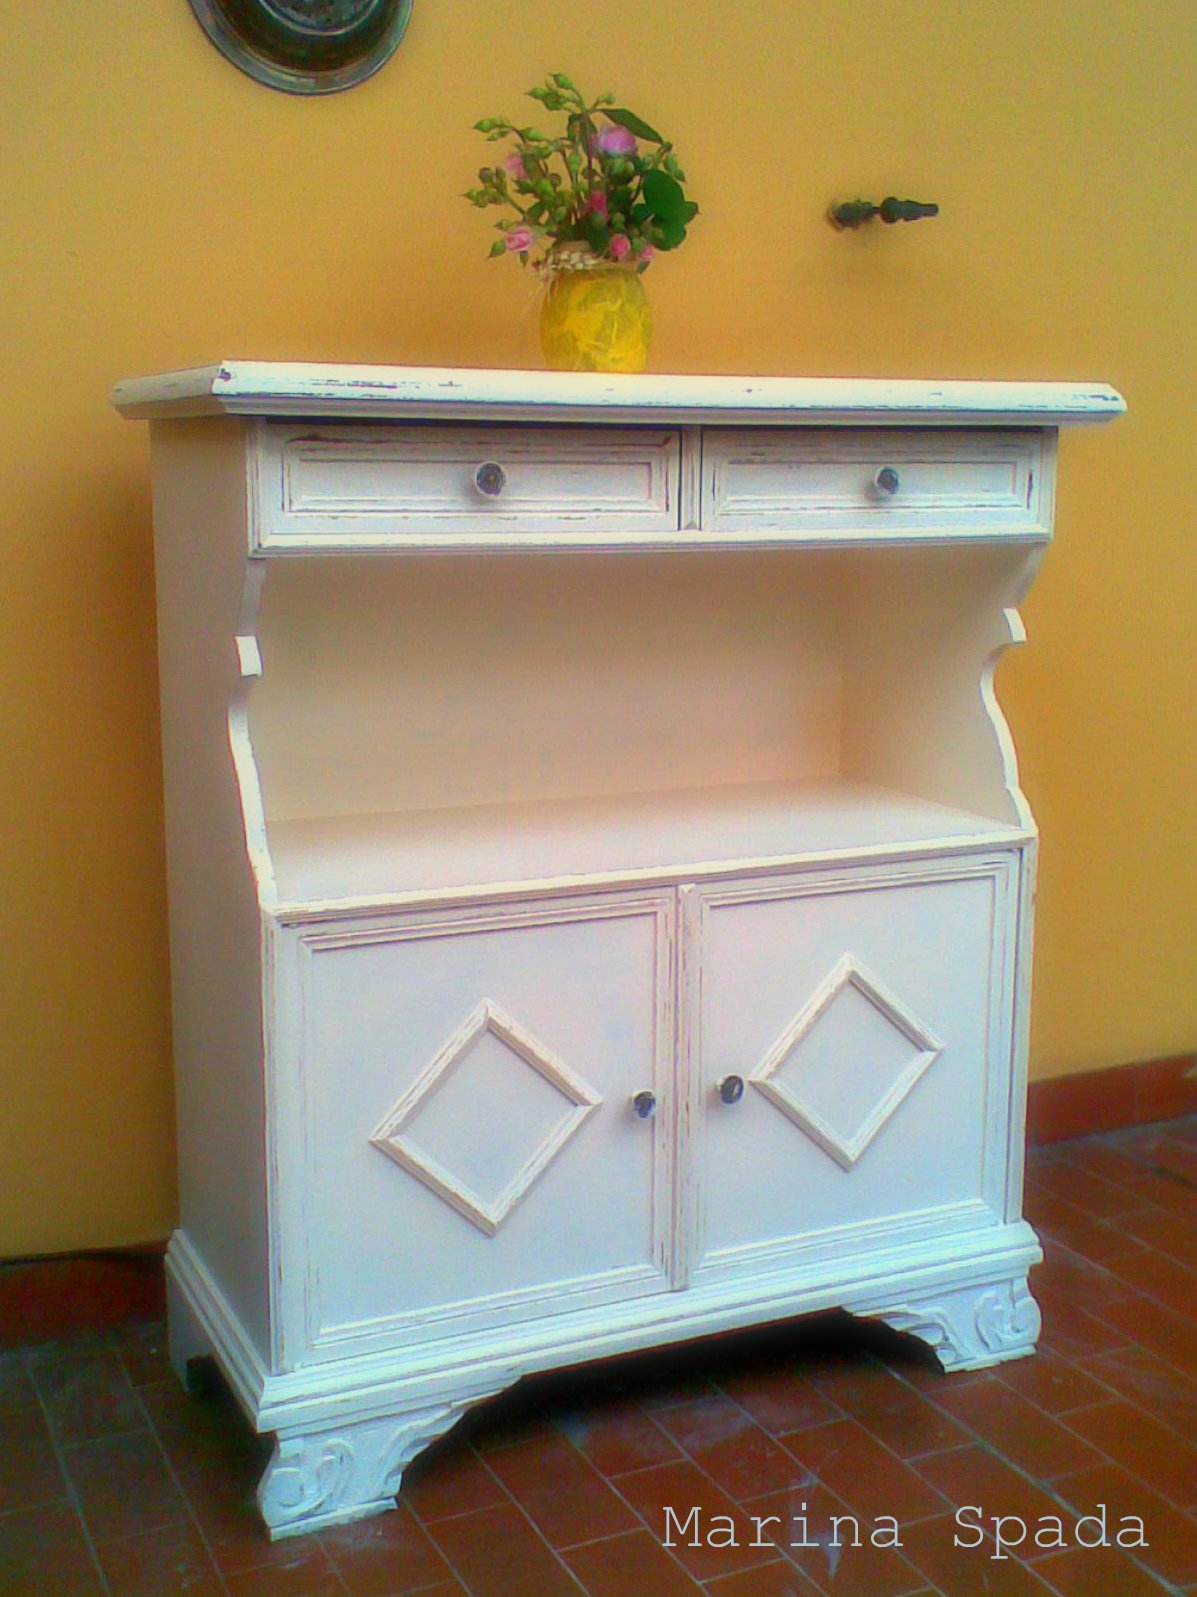 Unica come te original things mobiletto rinnovato in - Mobiletto cucina shabby ...